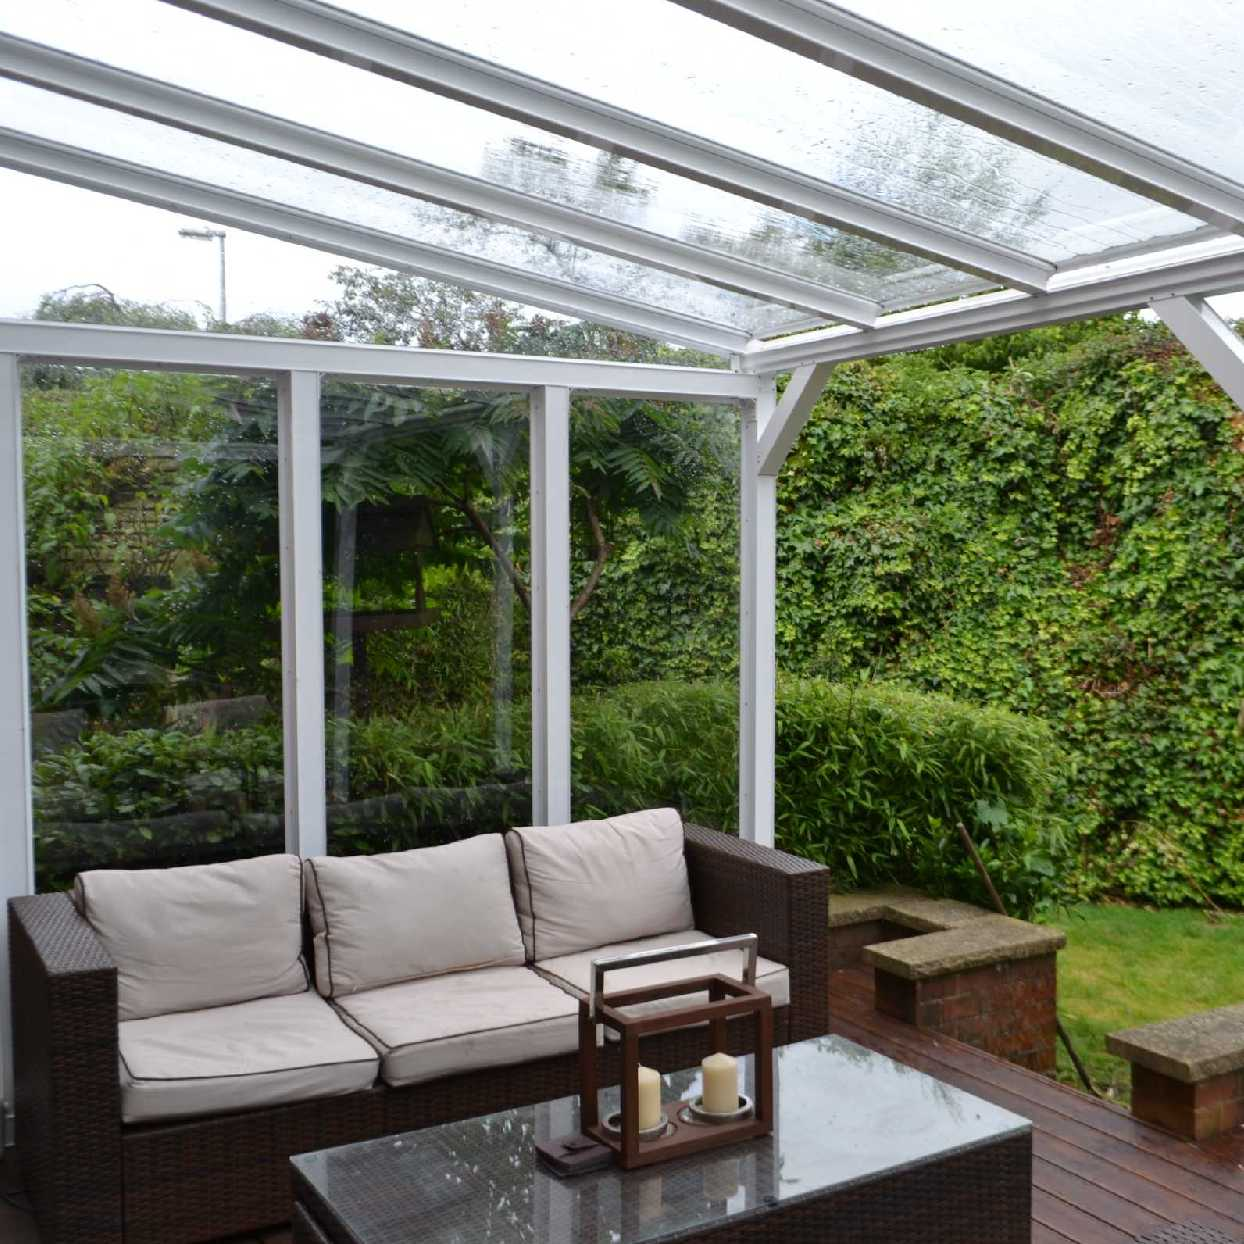 Omega Smart White Lean-To Canopy with 6mm Glass Clear Plate Polycarbonate Glazing - 5.6m (W) x 2.5m (P), (3) Supporting Posts